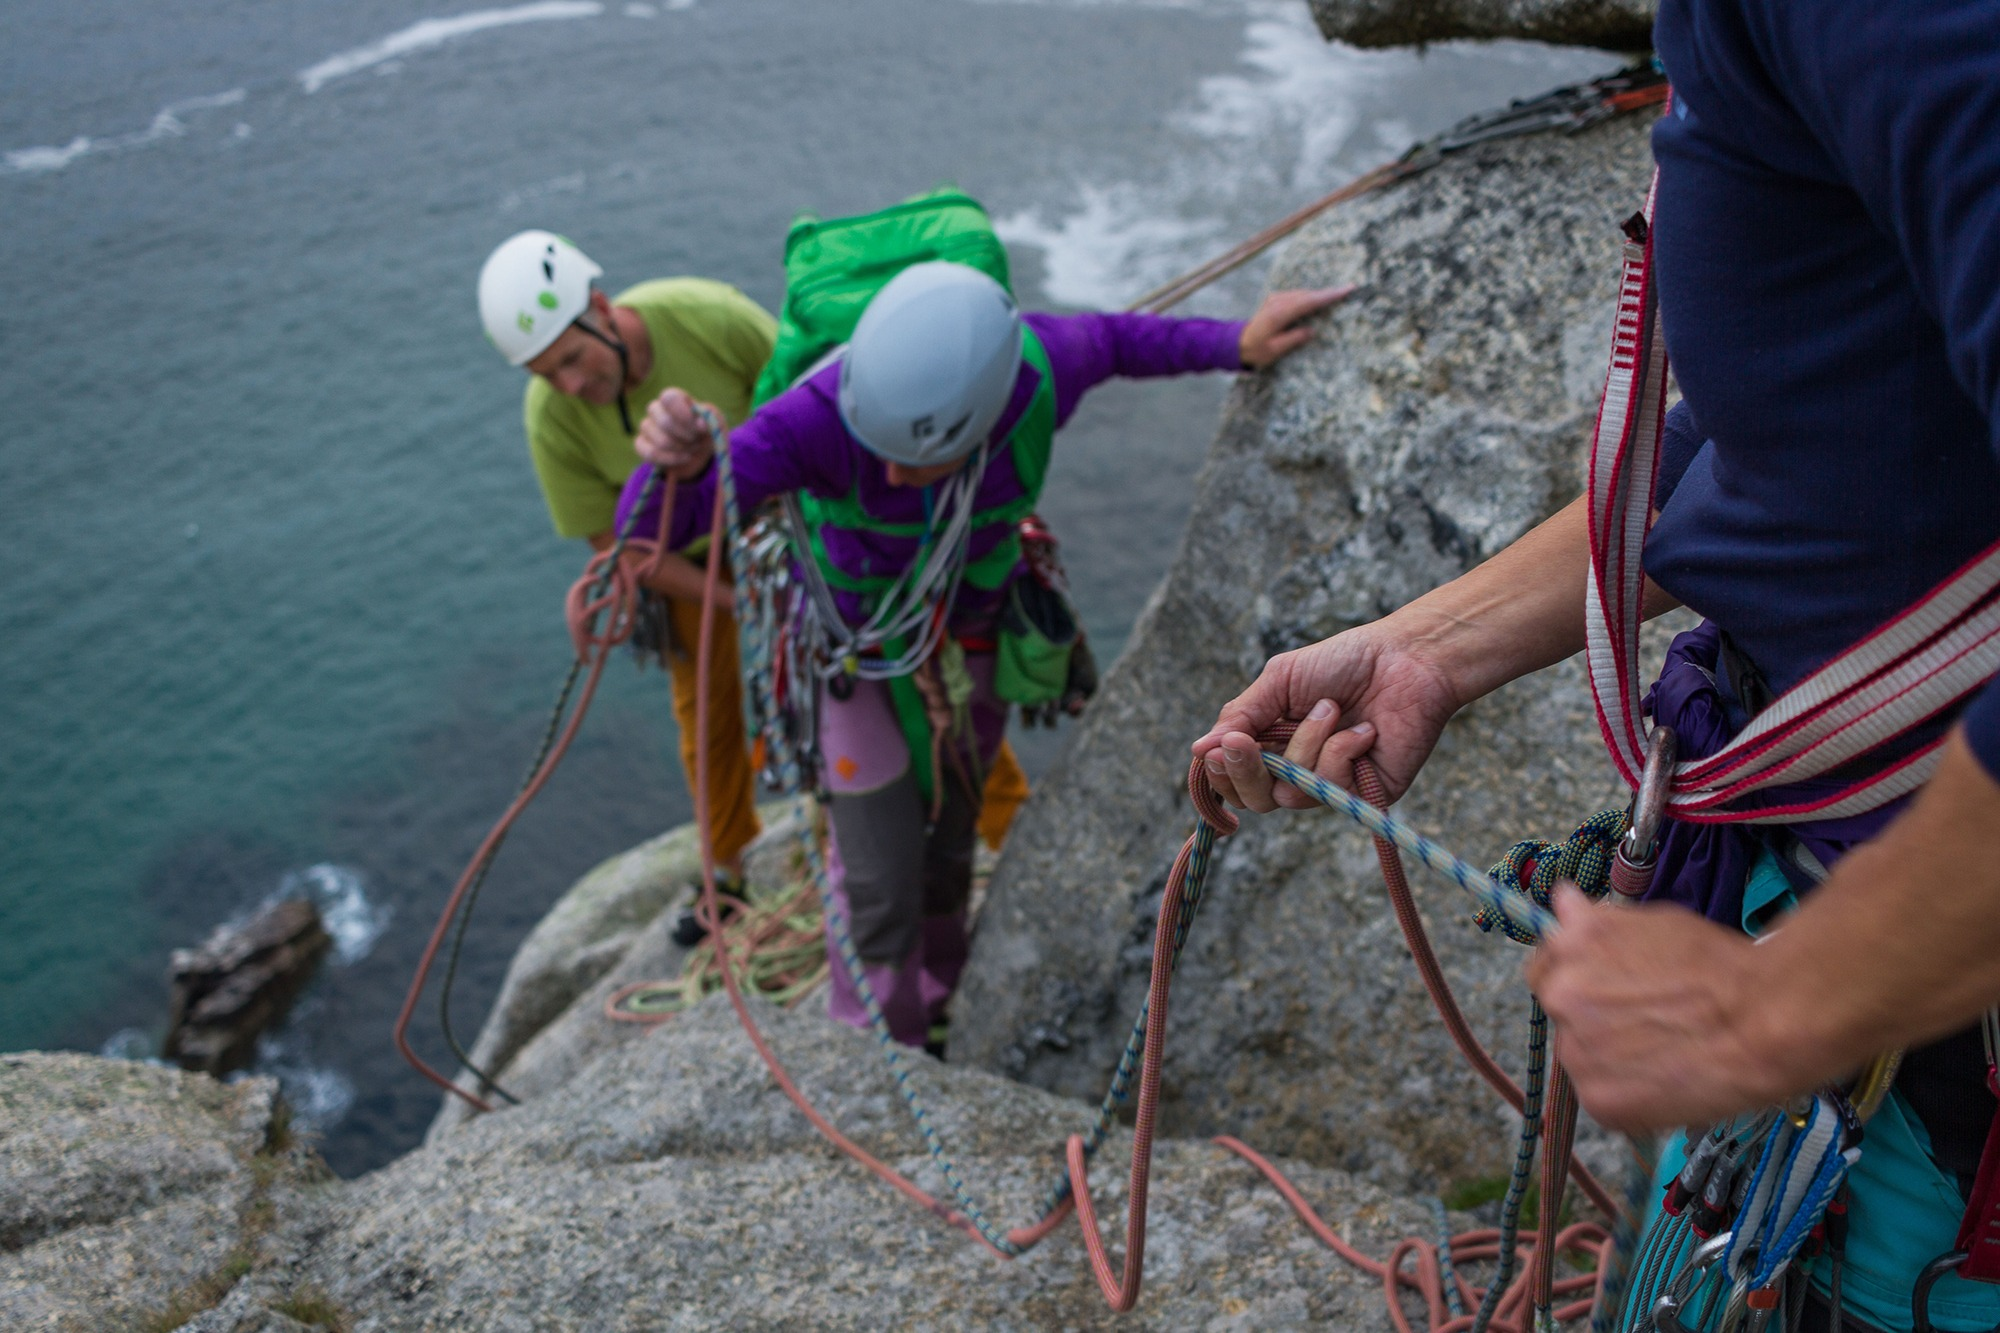 Photograph of Hilary Lawrenson sorting out the ropes, shot by Jessie Leong